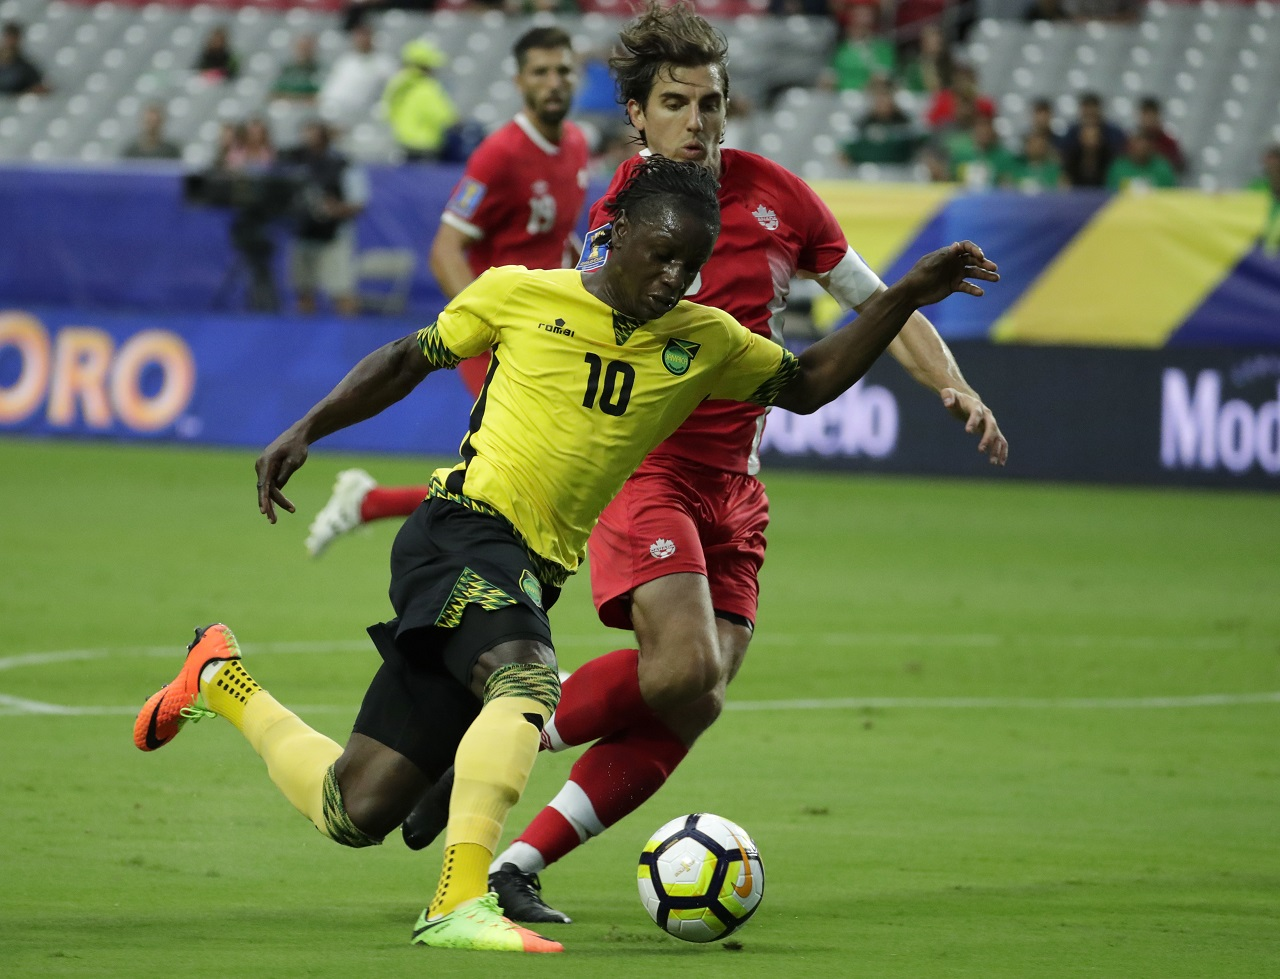 Jamaica's Darren Mattocks (10) dribbles past Canada's Dejan Jakovic during their CONCACAF Gold Cup quarterfinal match, Thursday, July 20, 2017, in Glendale, Ariz.